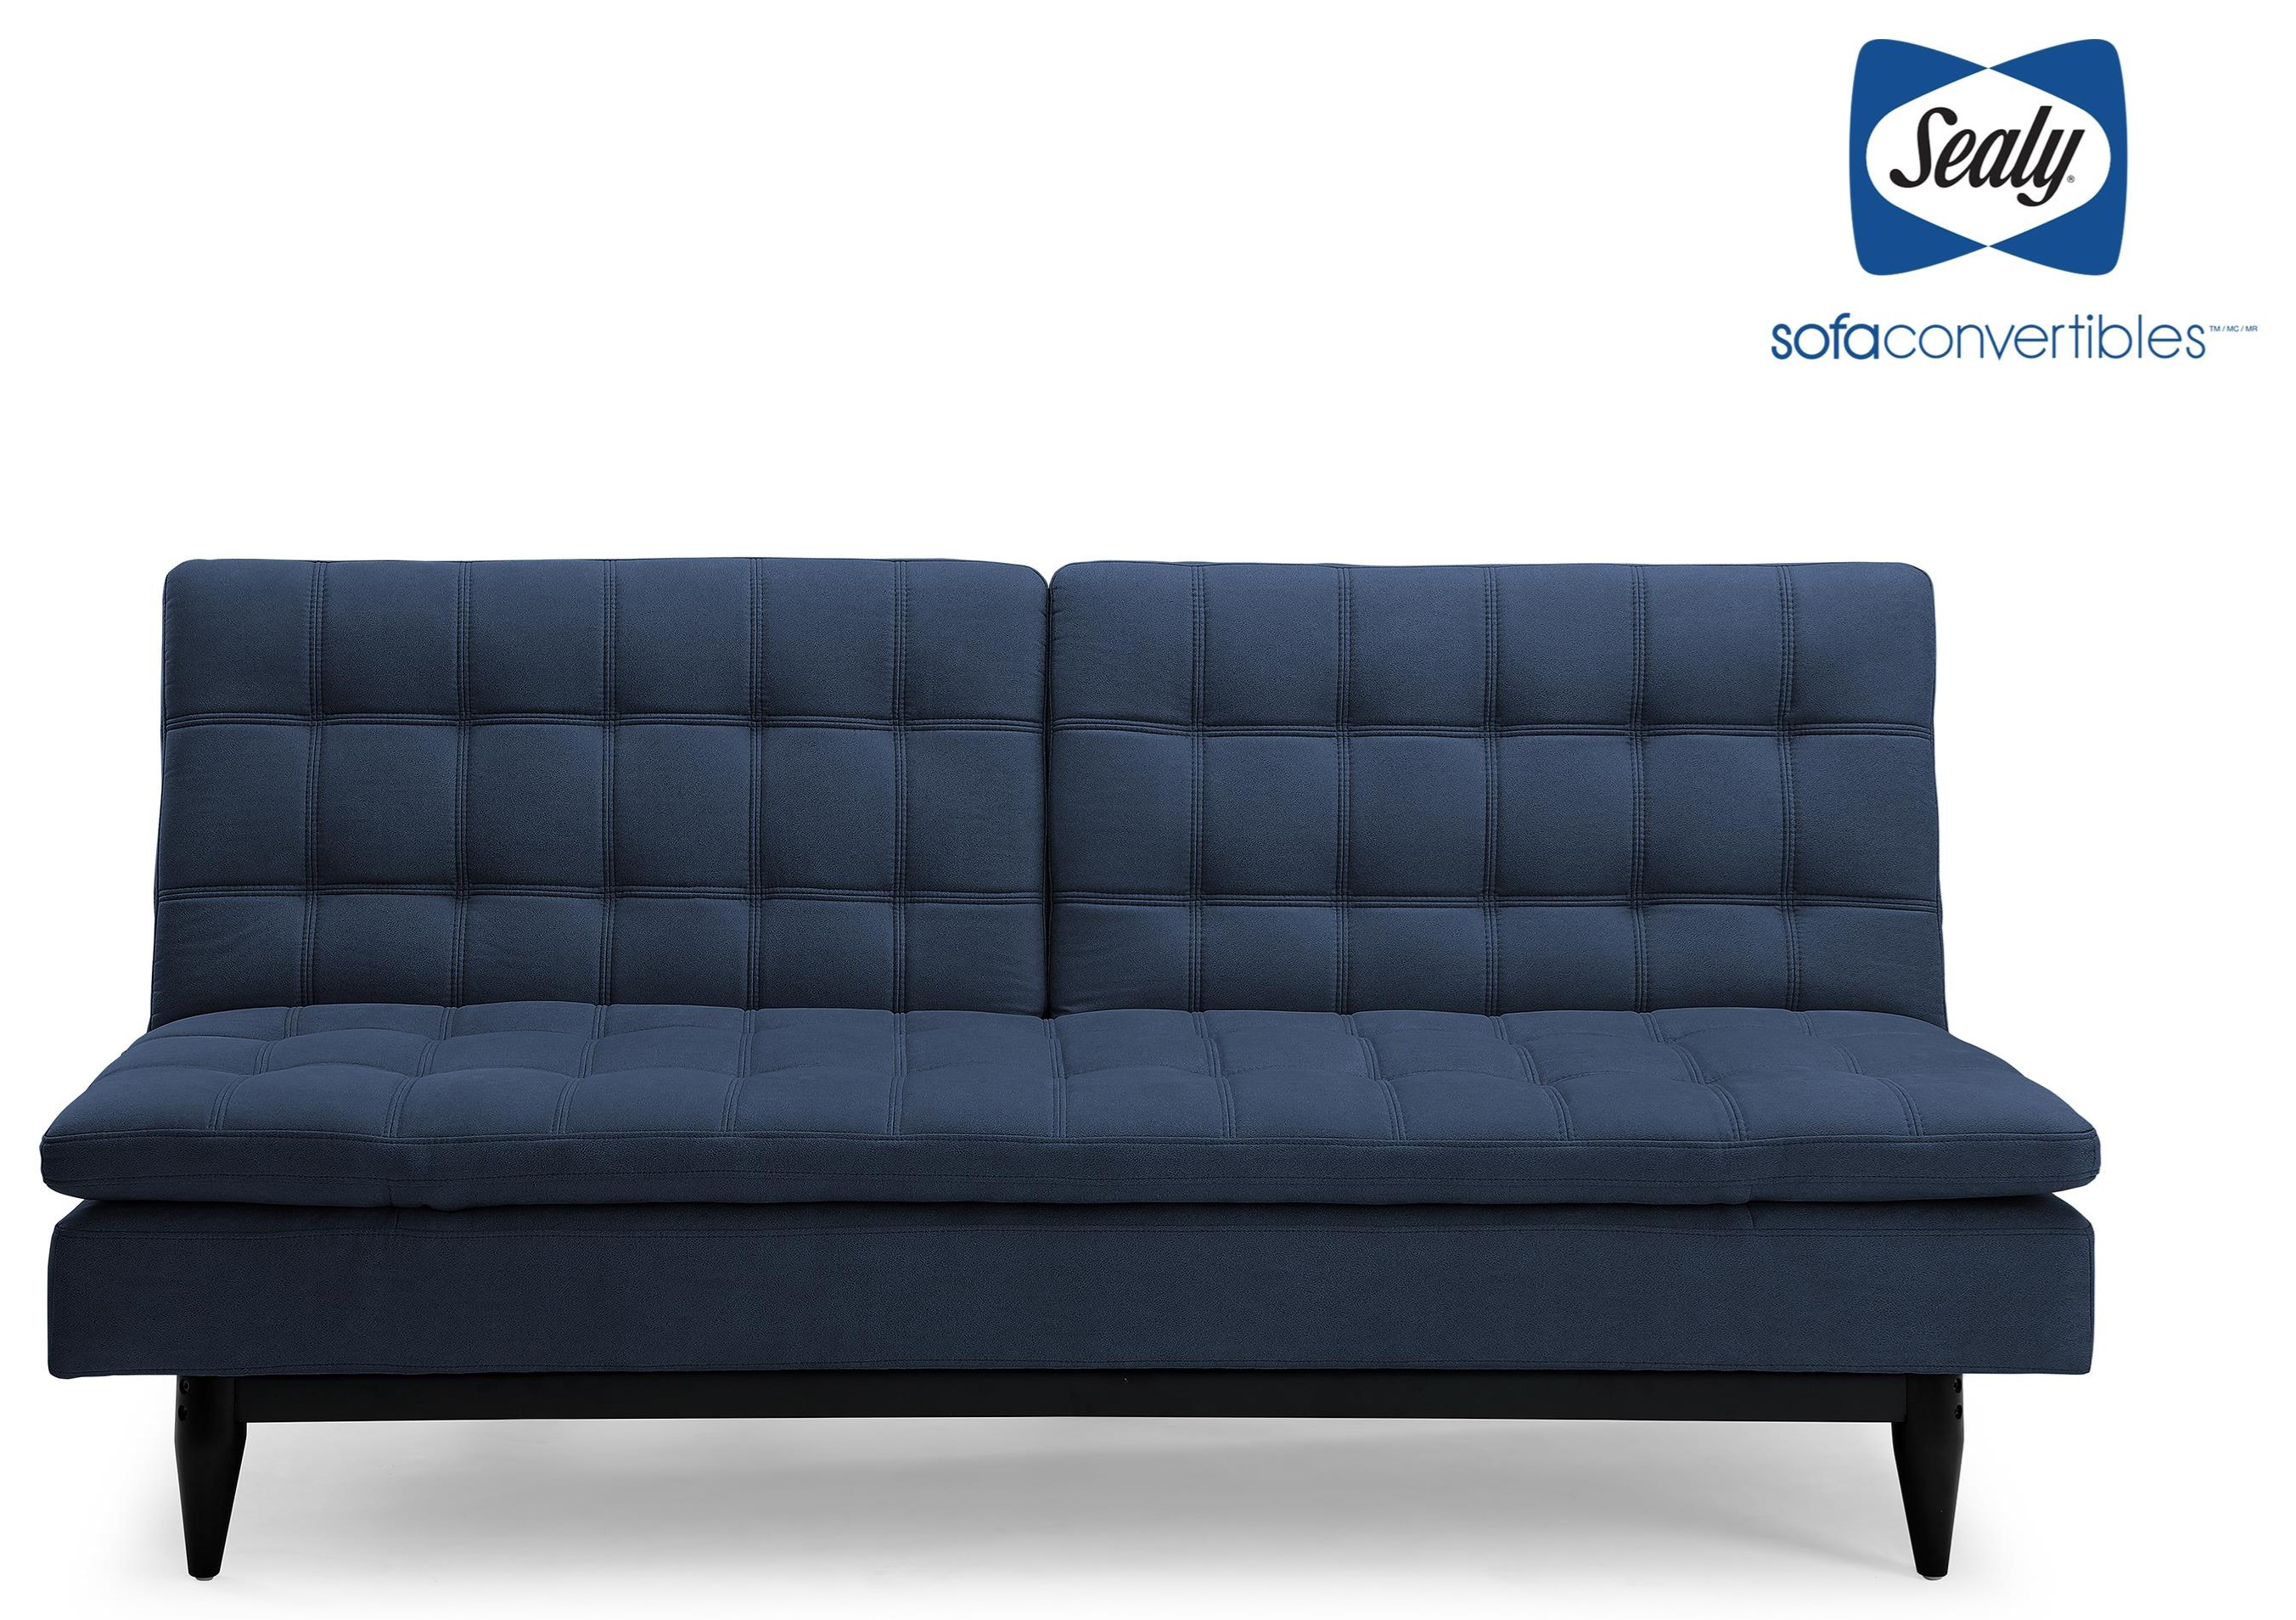 Sofa Convertible with Adjustable Arms